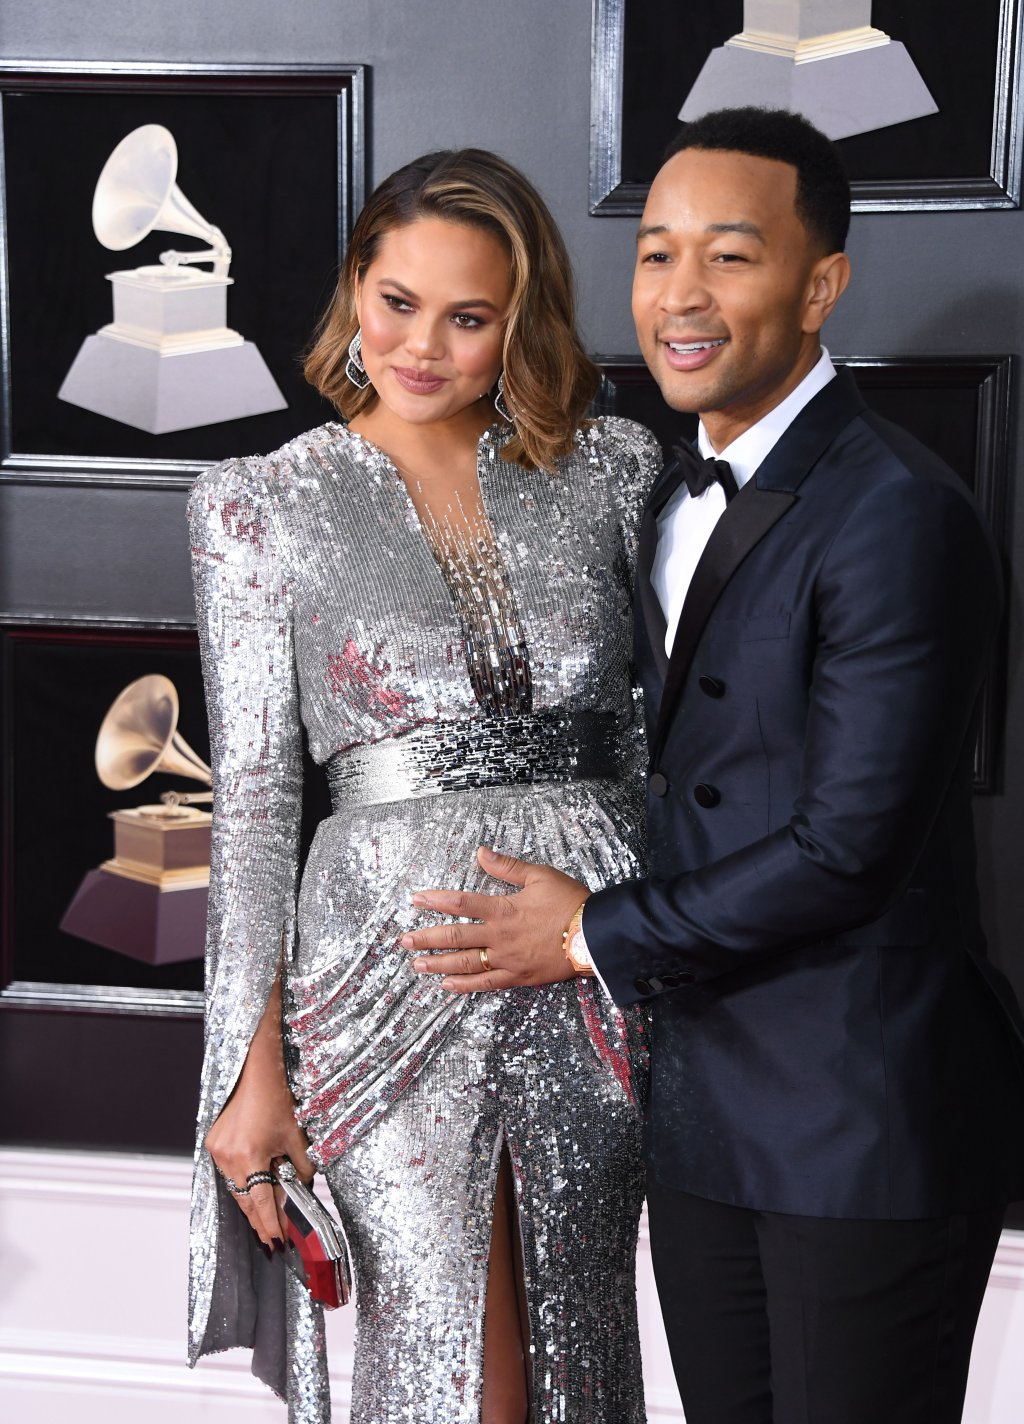 US-ENTERTAINMENT-MUSIC-GRAMMY-ARRIVALS-award